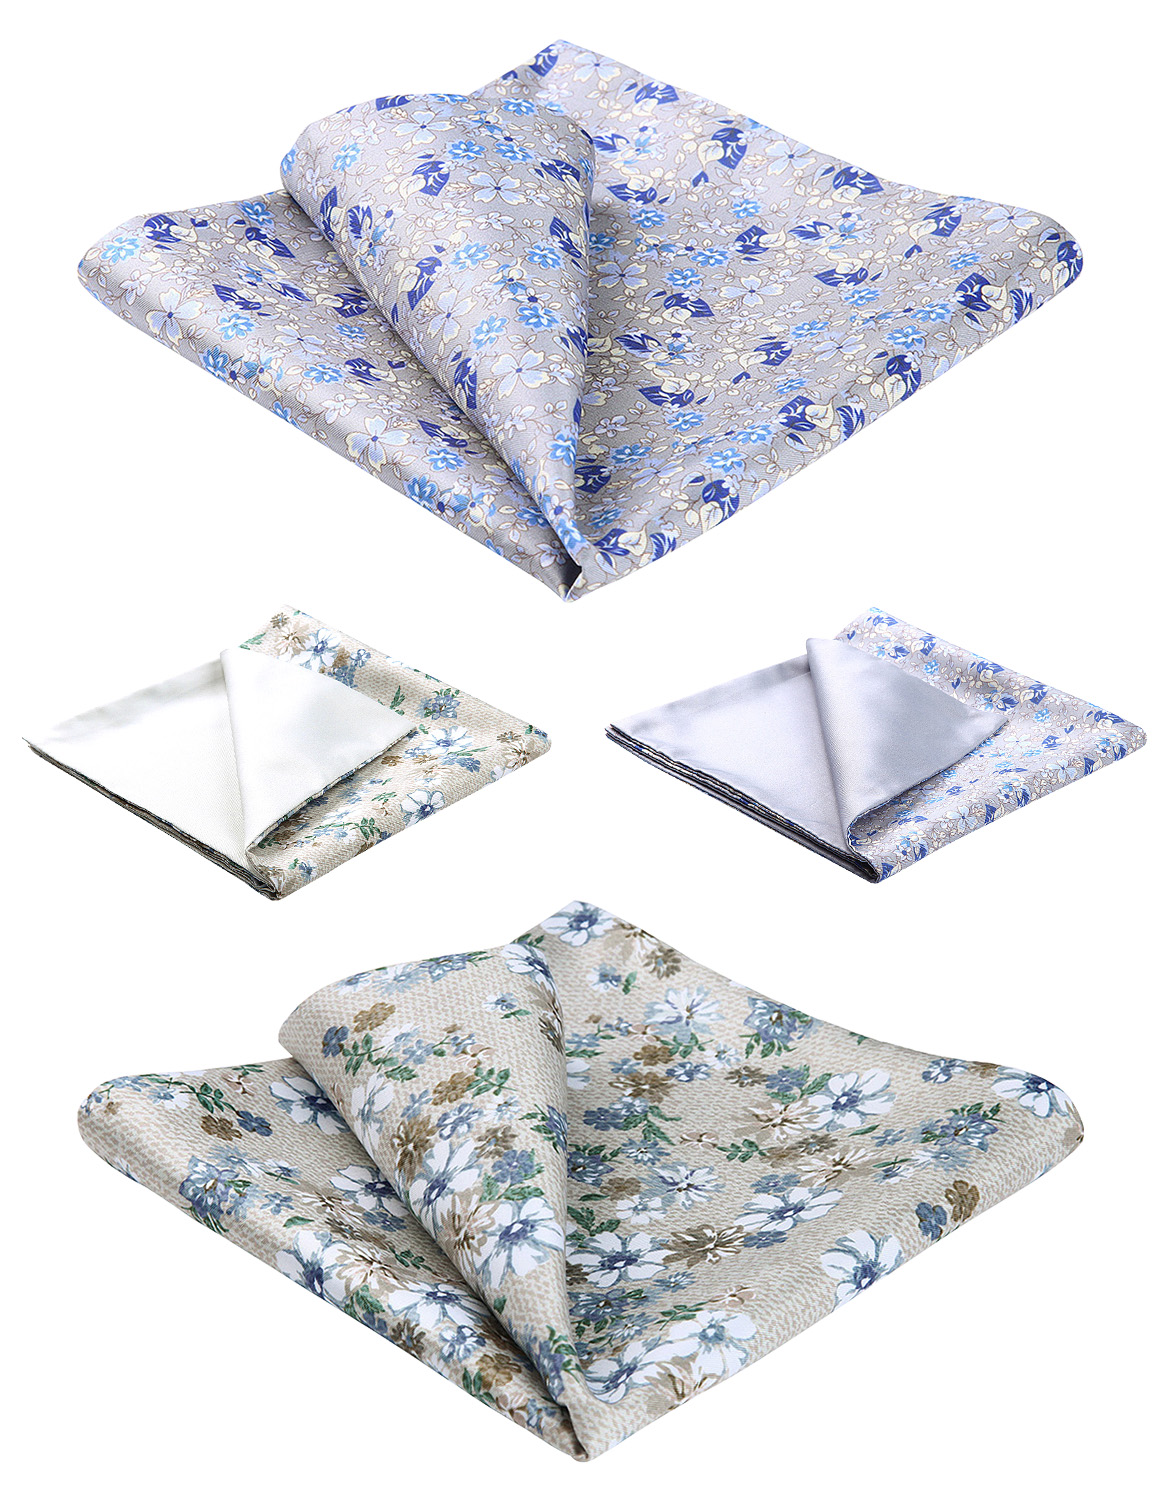 2 Piece Assorted Fashion Paisley Printed Double Sided Men 100% Silk Party Weeding Handkerchief Pocket Square Hanky Set